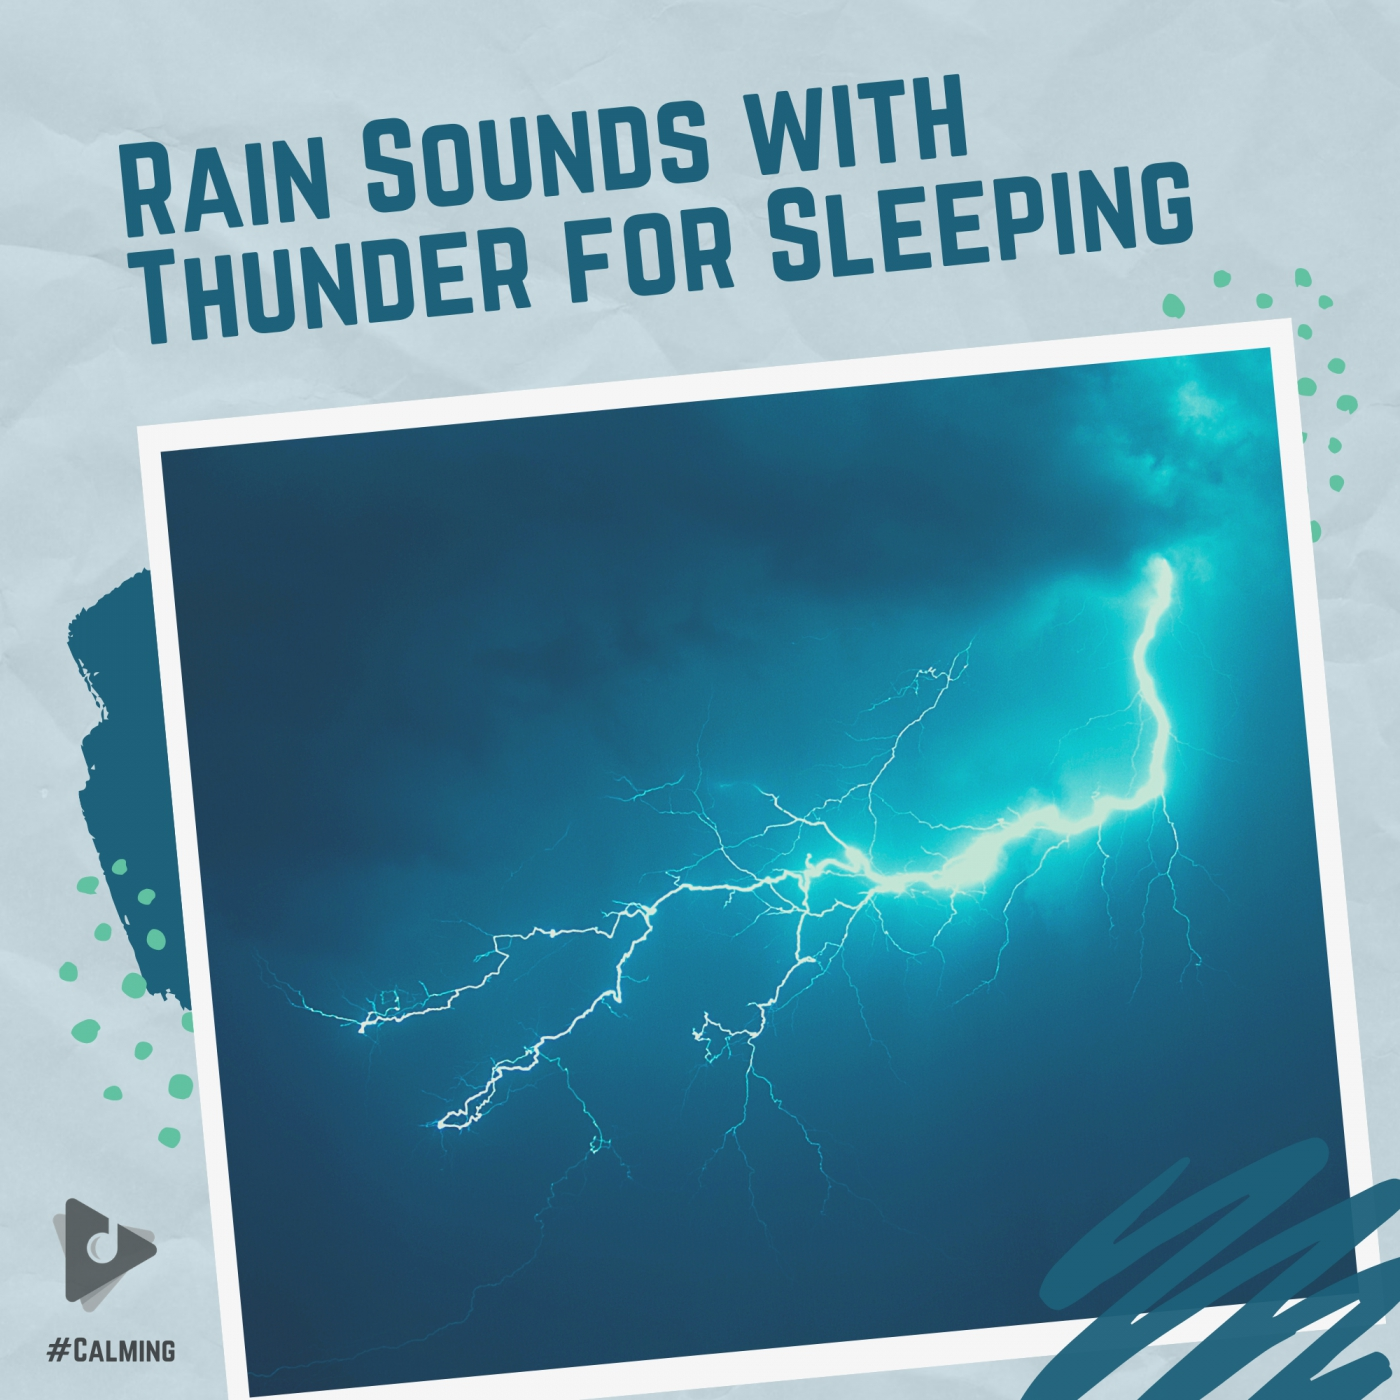 Rain Sounds with Thunder for Sleeping